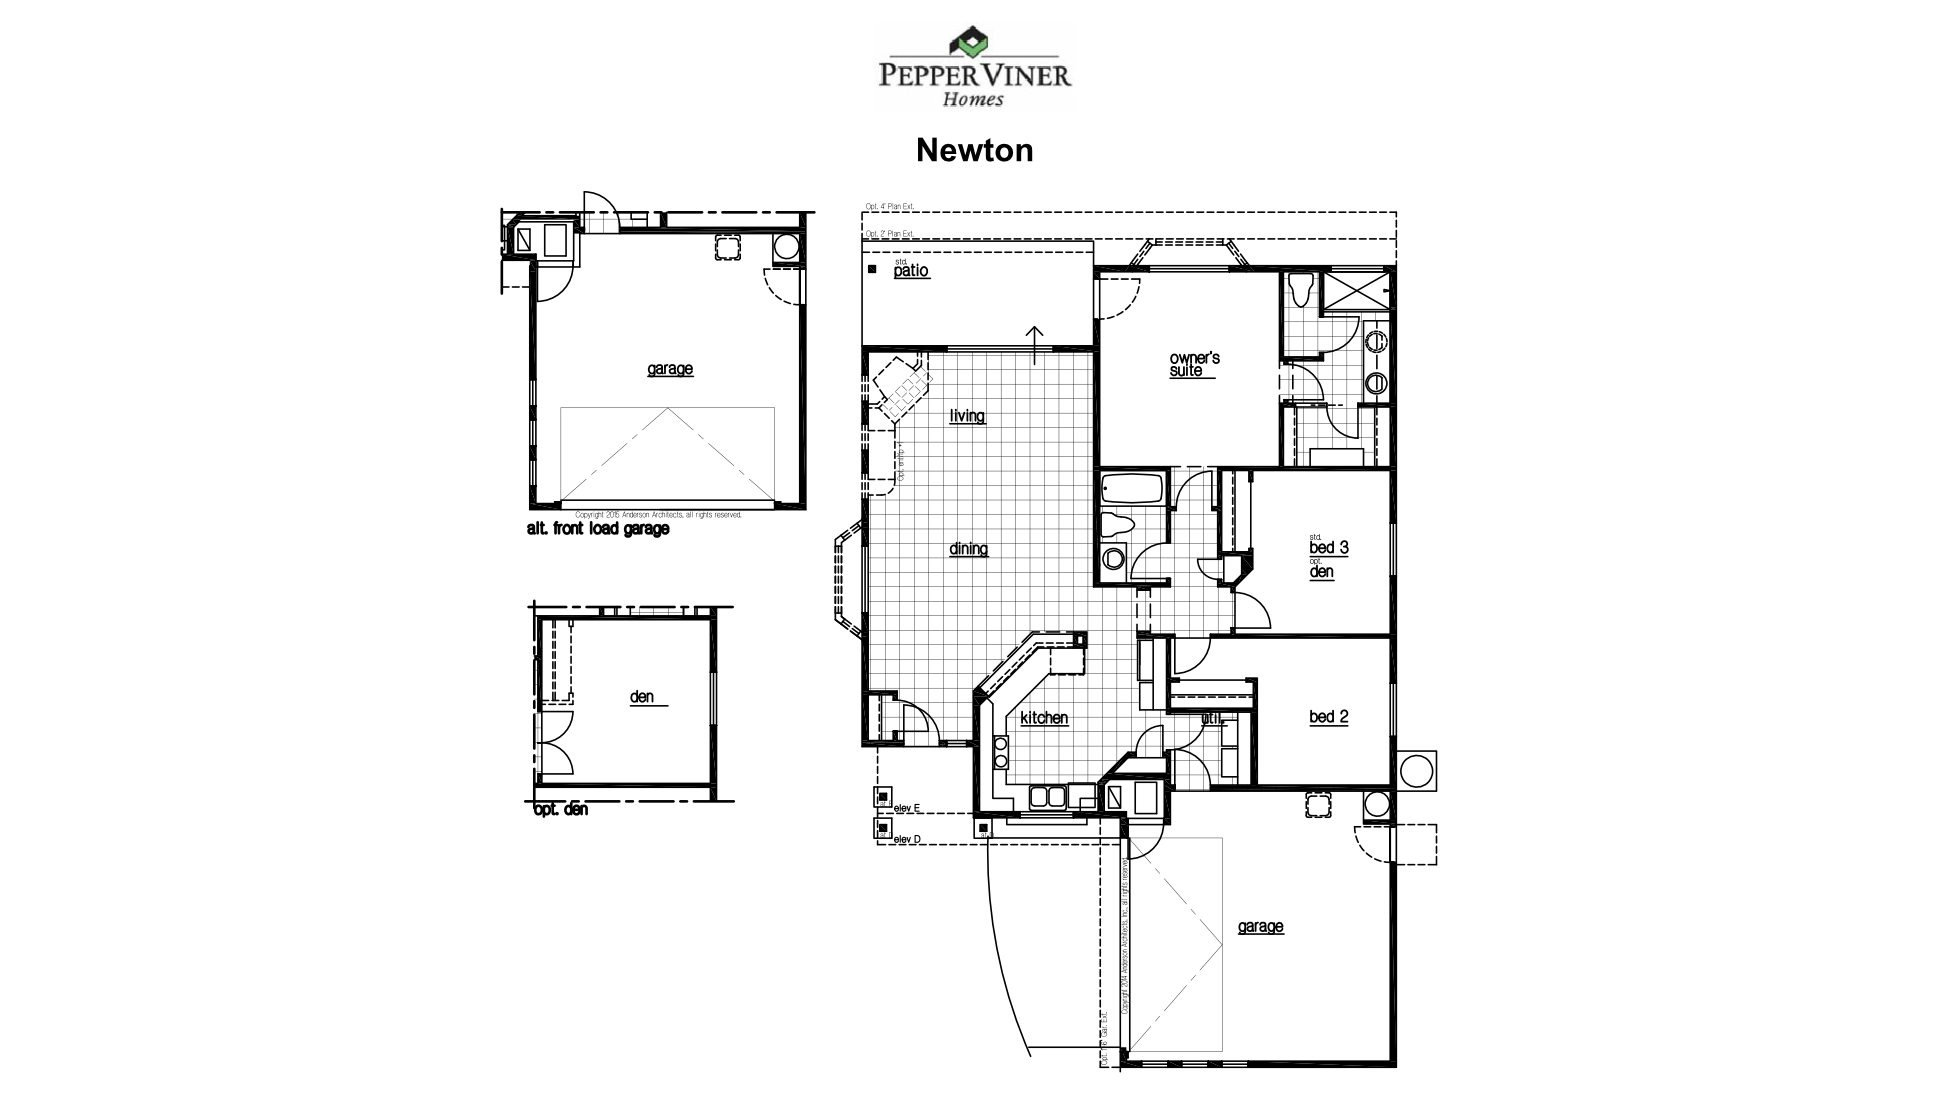 Elementary place floor plans pepper viner homes Place builders floor plans